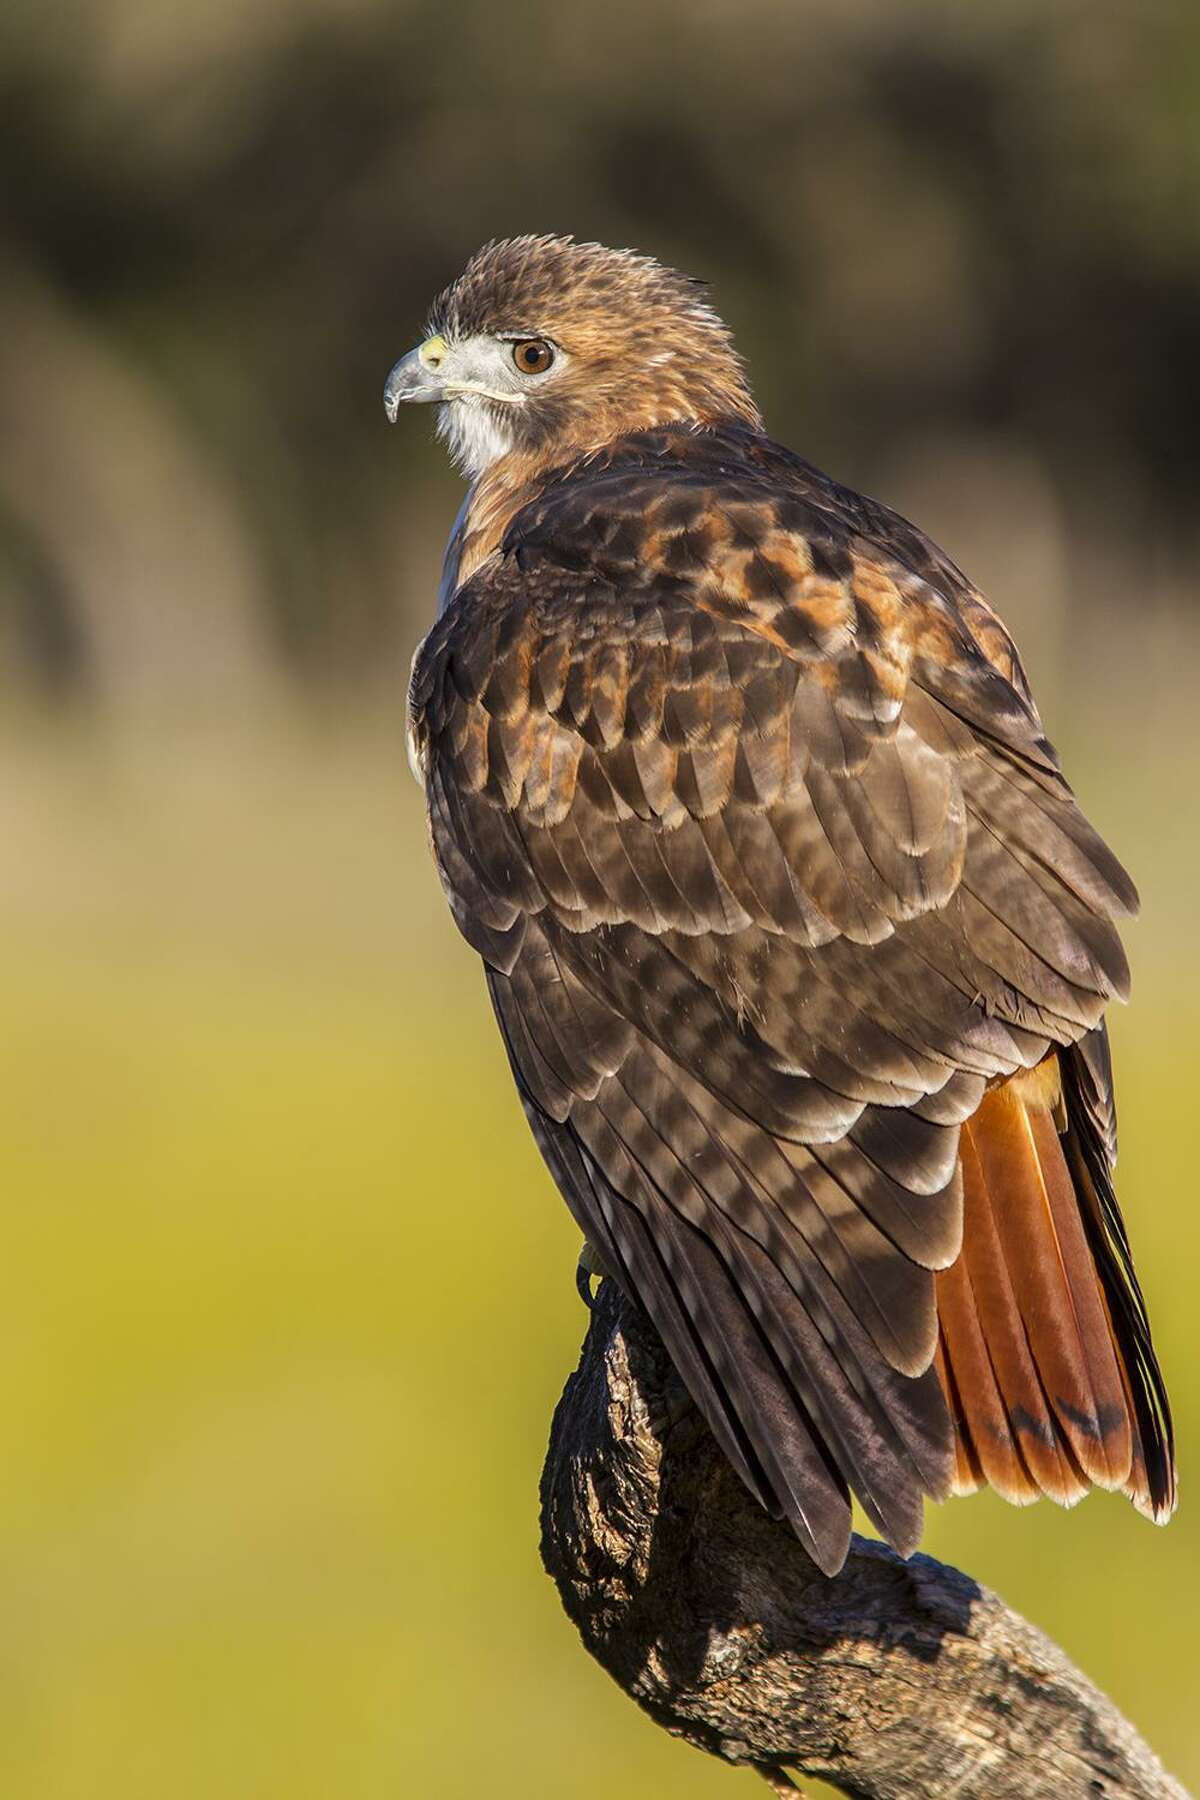 Red-tailed hawks are master predators. They often will pin their prey to the ground in tall grass. Photo Credit: Kathy Adams Clark. Restricted use.